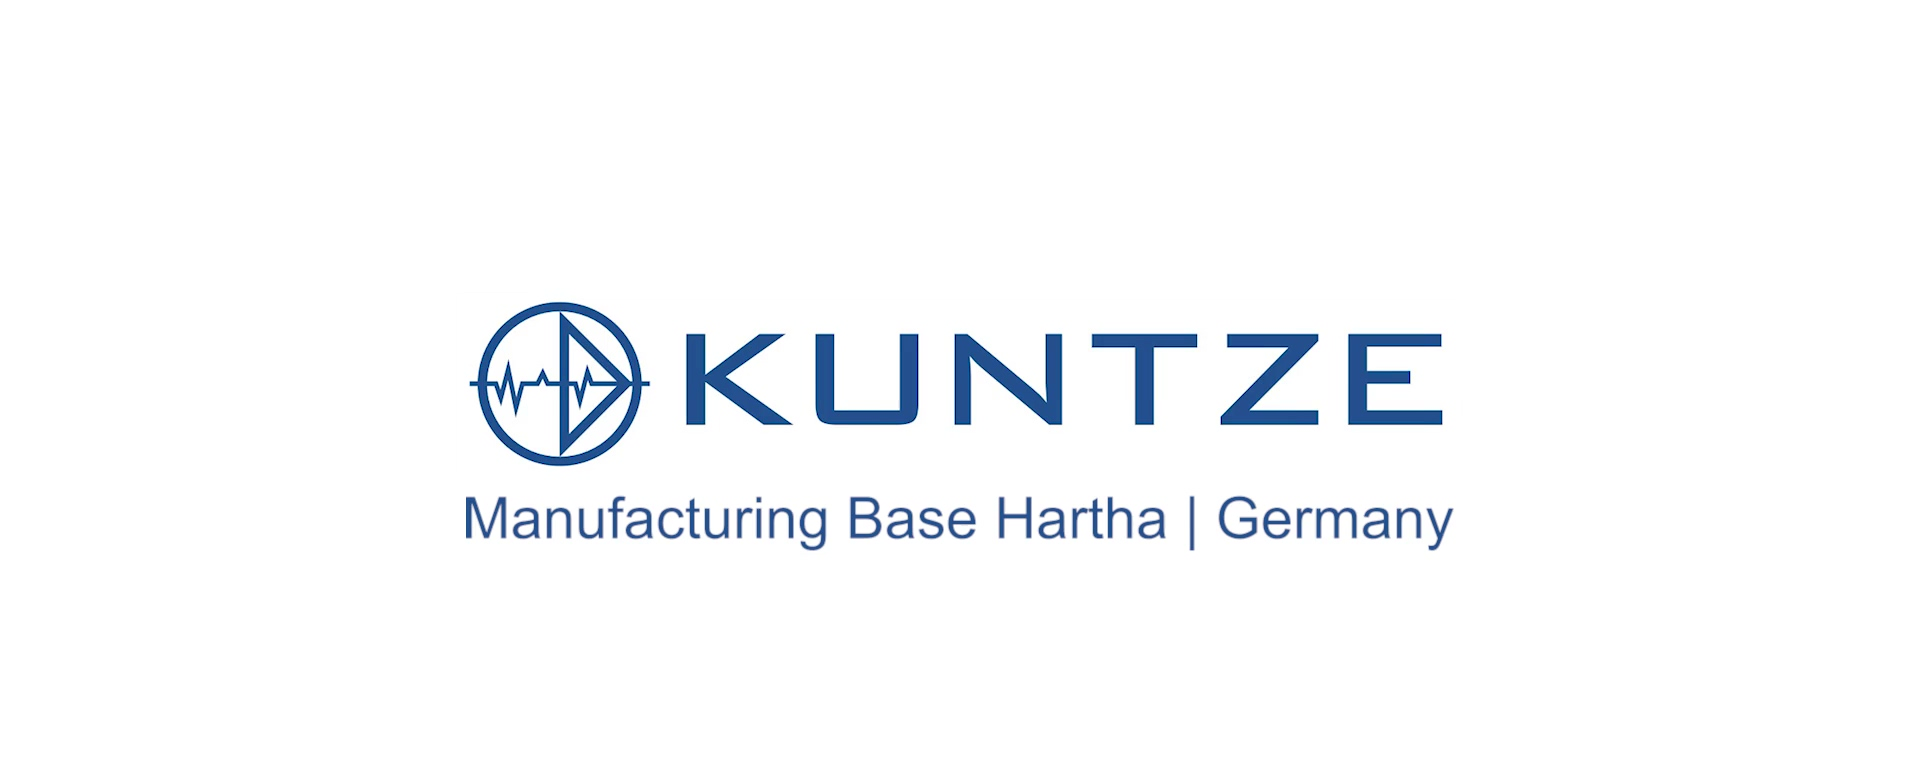 201908_Kuntze Manufacturing Base Hartha Final